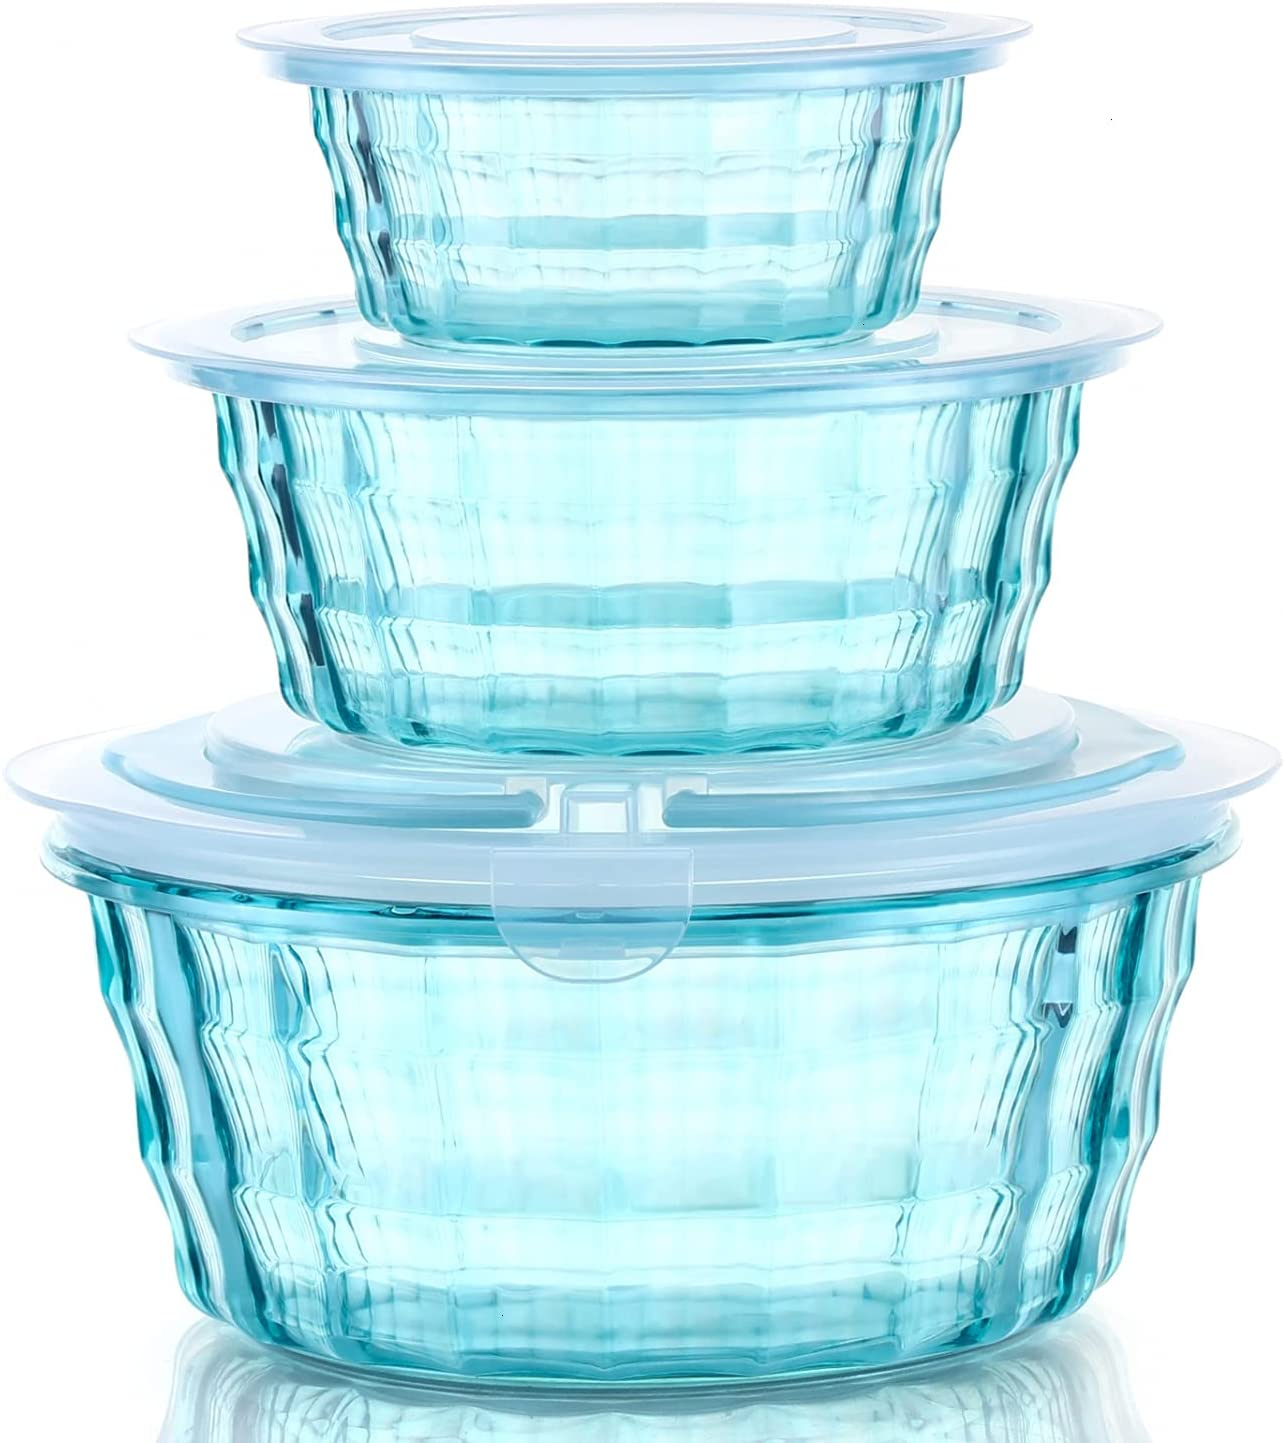 Pomeat Food Storage Containers Set, 3 Piece Plastic Round Food Containers with Lids, Mixing Bowl BPA-Free Stackable and Nesting Storage Containers for Food, Meat, Fruit, Salad, Vegetables